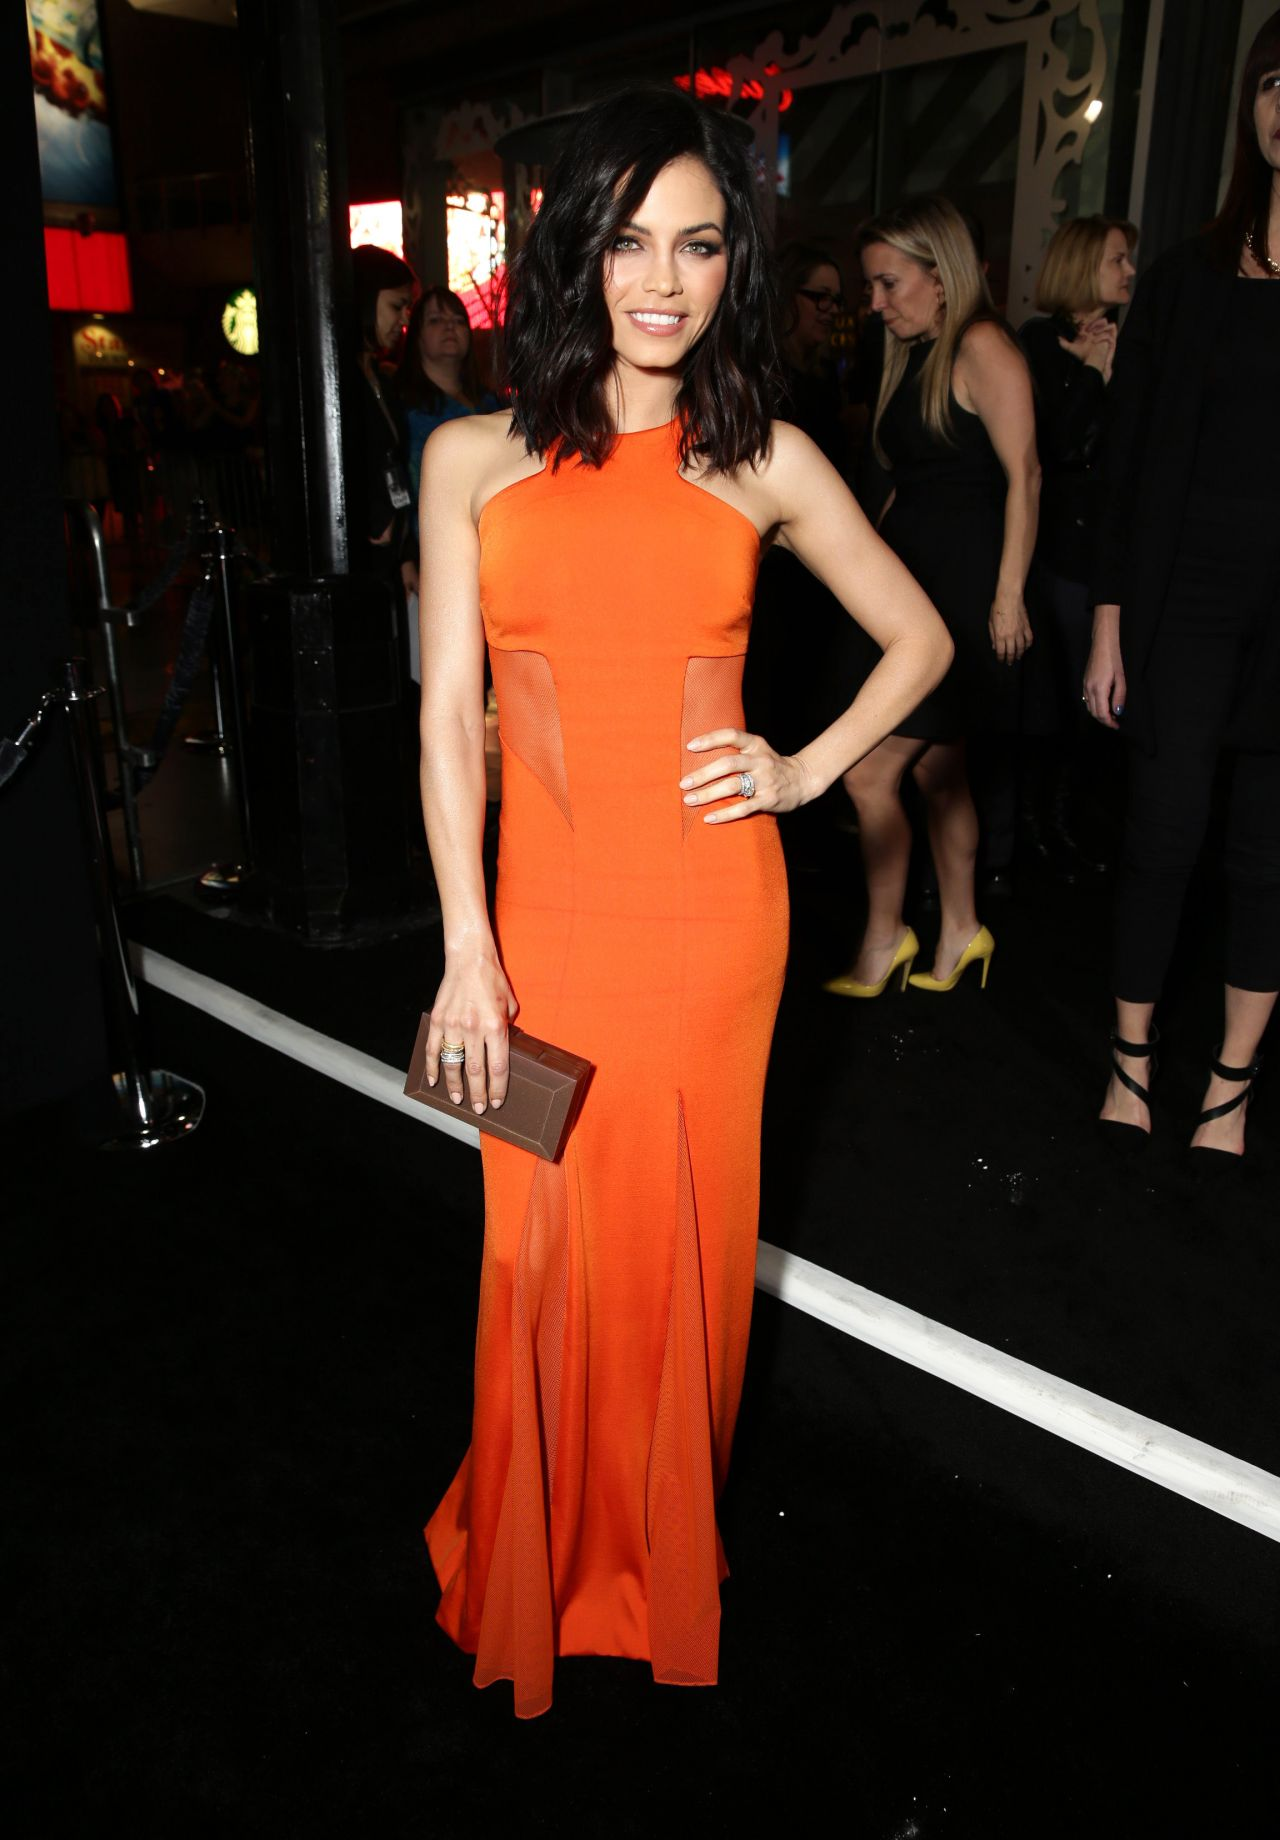 jenna-dewan-tatum-jupiter-ascending-premiere-in-hollywood_2